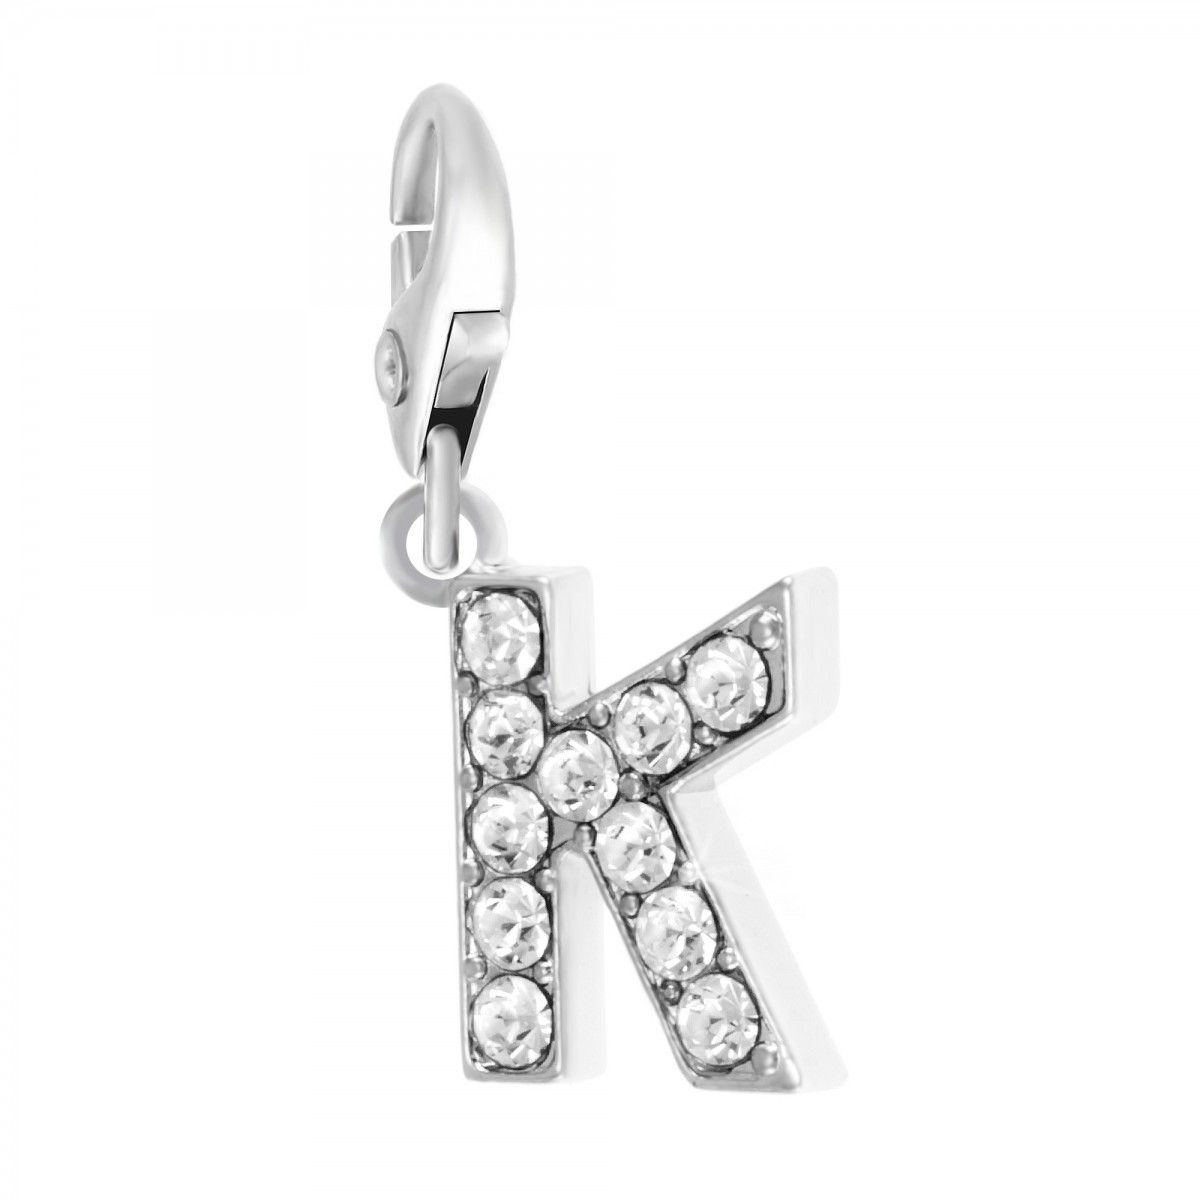 Charm Lettre K So Charm made with Crystal from Swarovski